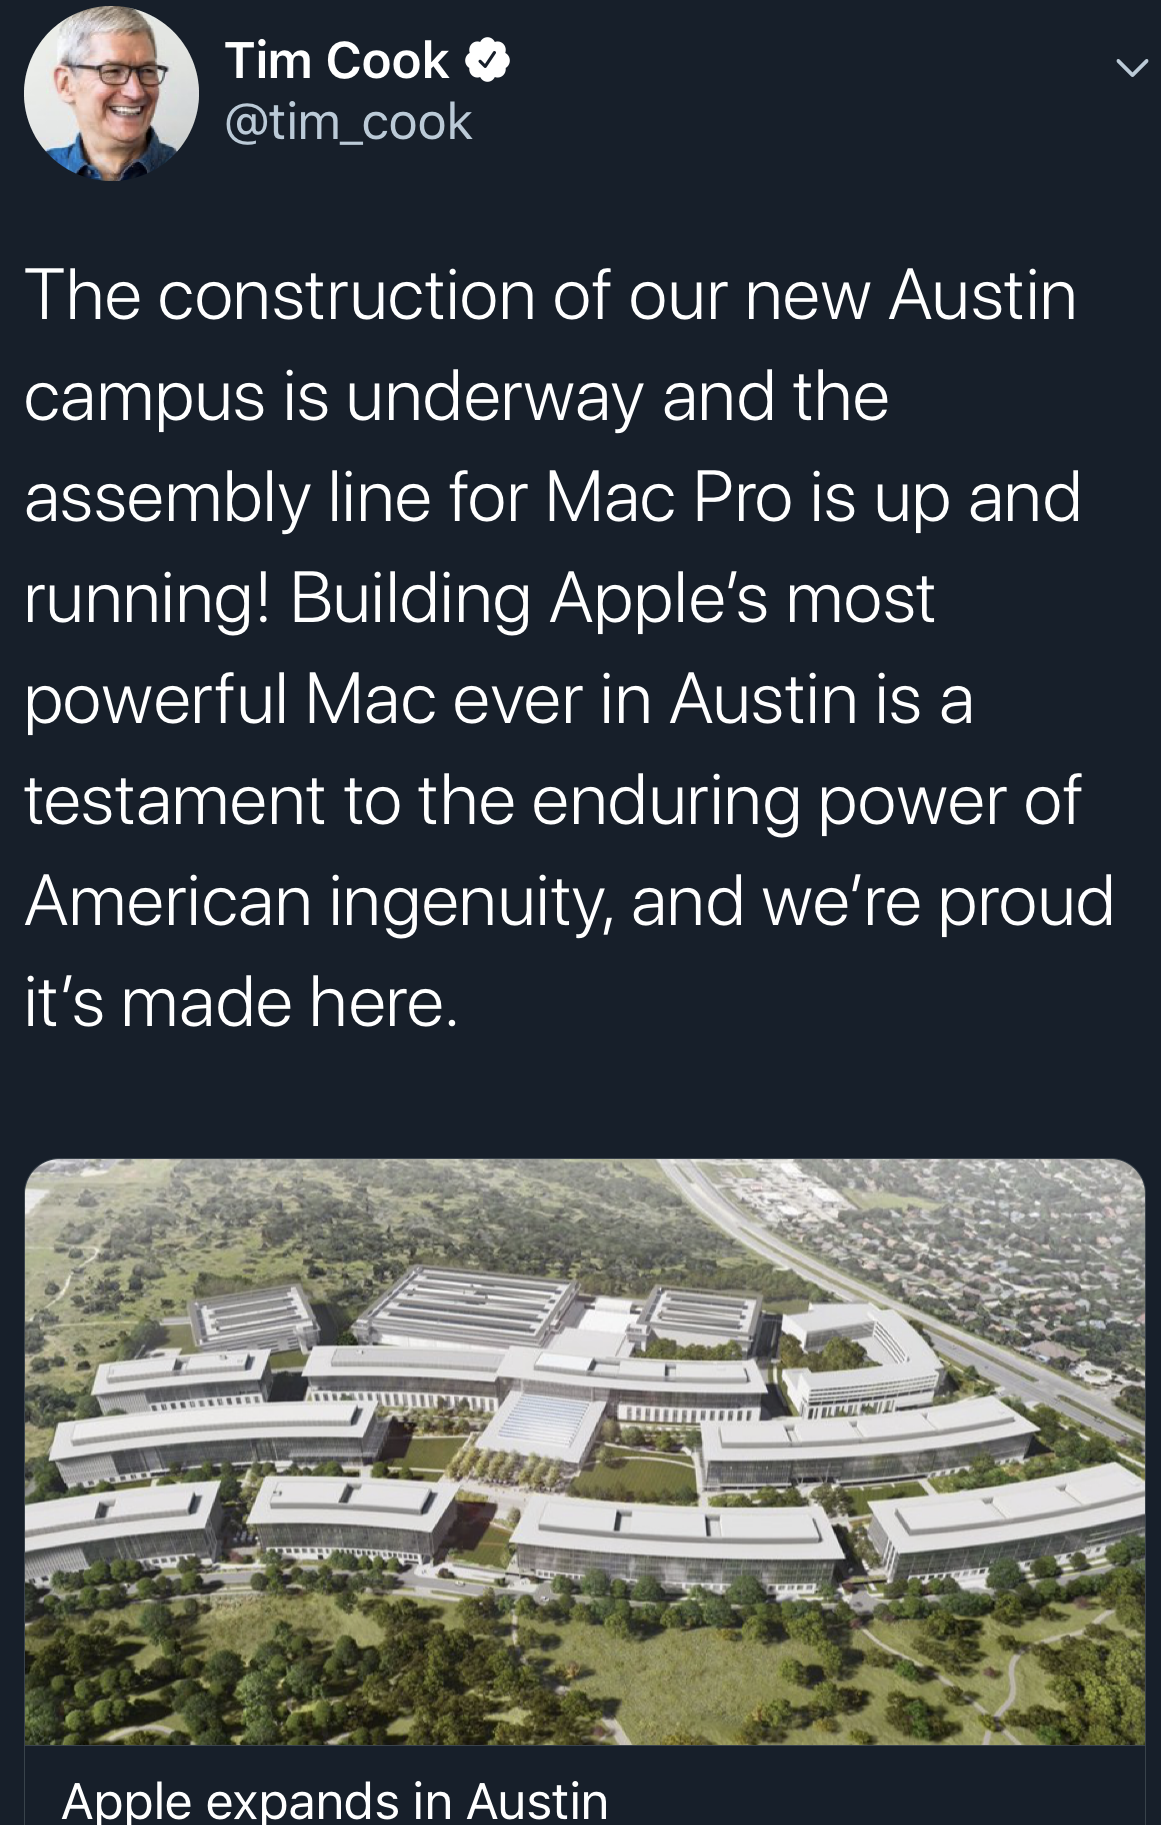 Apple expands in Austin, Texas 2019